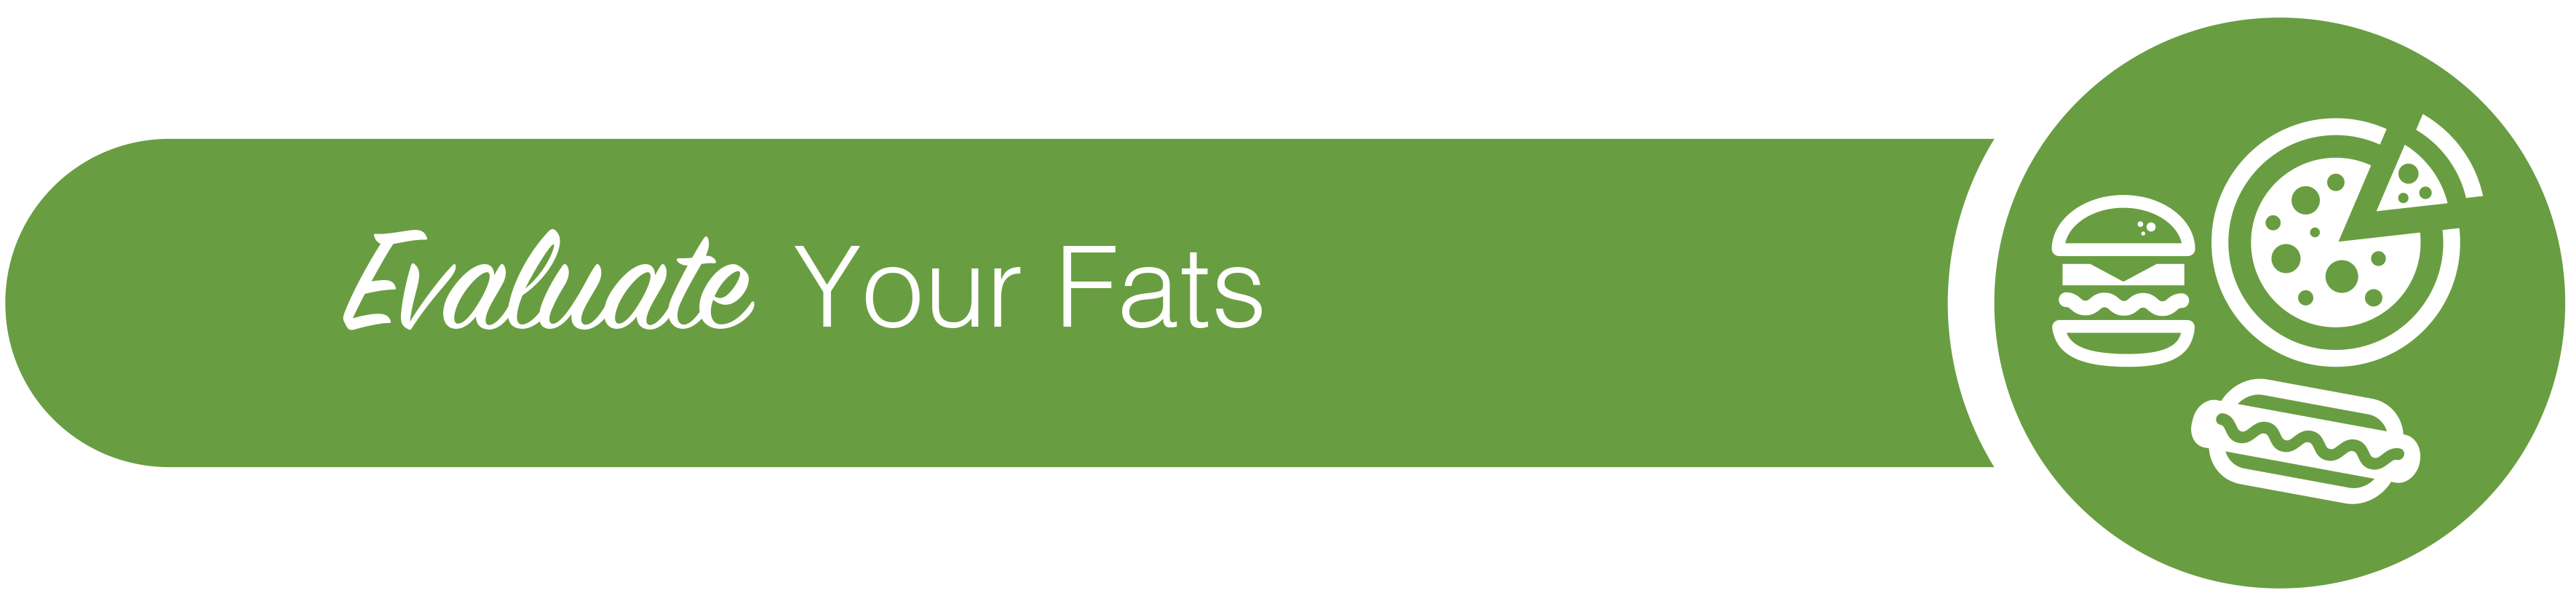 1119-KitchenClean-Up-Blog-Fats